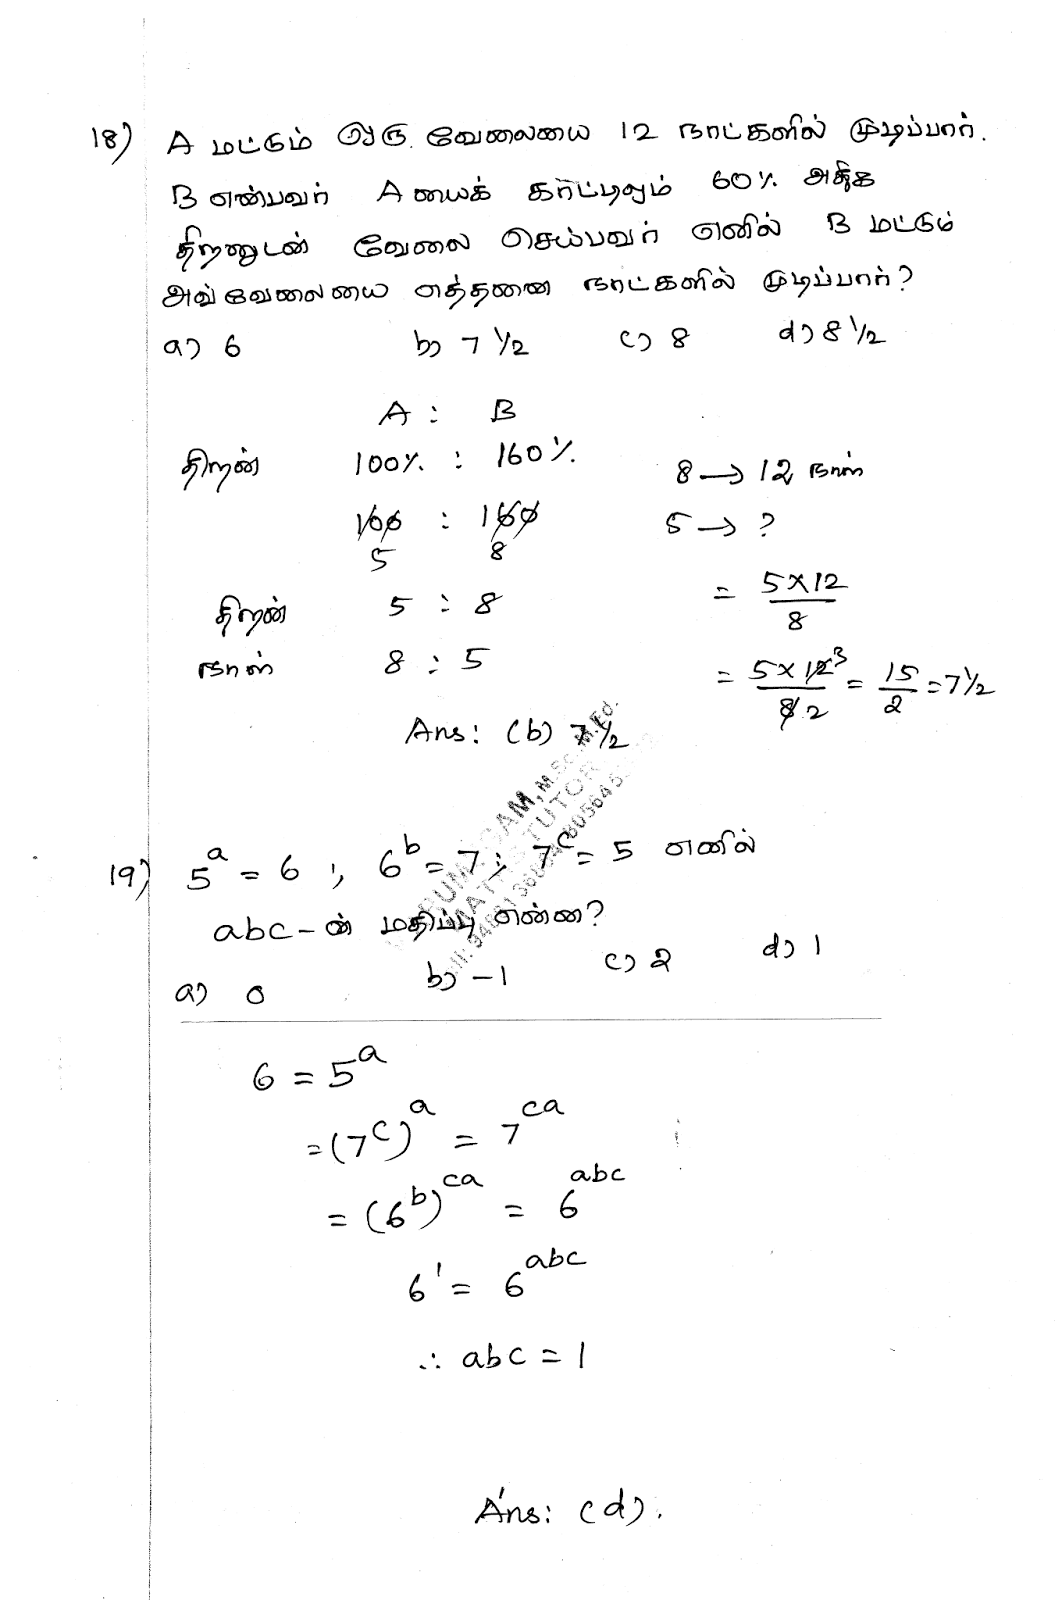 TNPSC - GROUP2 NON INTERVIEW - 2016 EXAM (DATE: 24.1.2016) QUESTIONS - 8